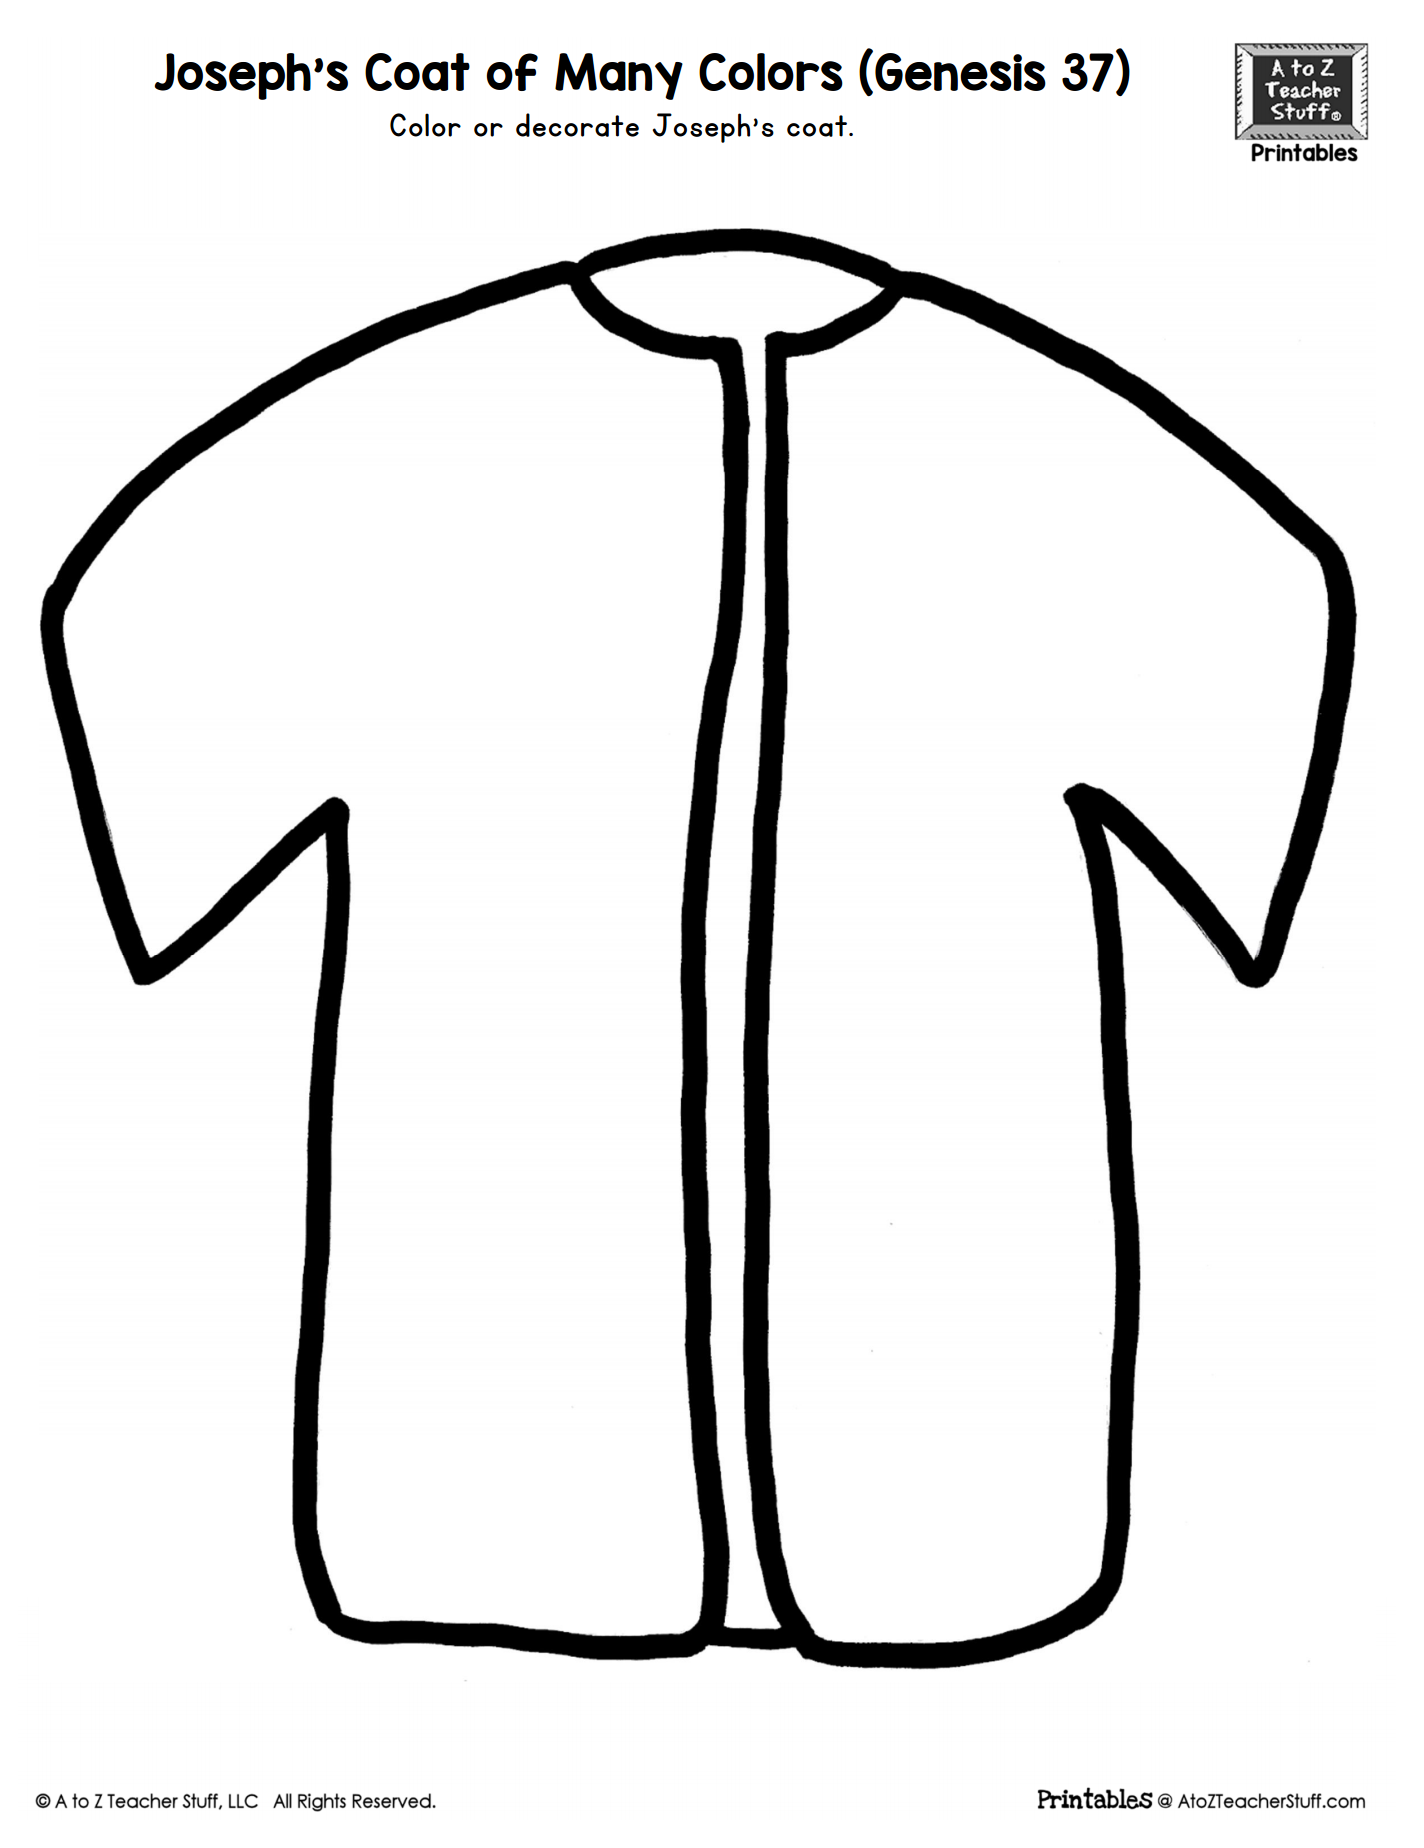 joseph coat of many colors coloring page josephs coat of many colors color by number sunday coat joseph colors page coloring many of